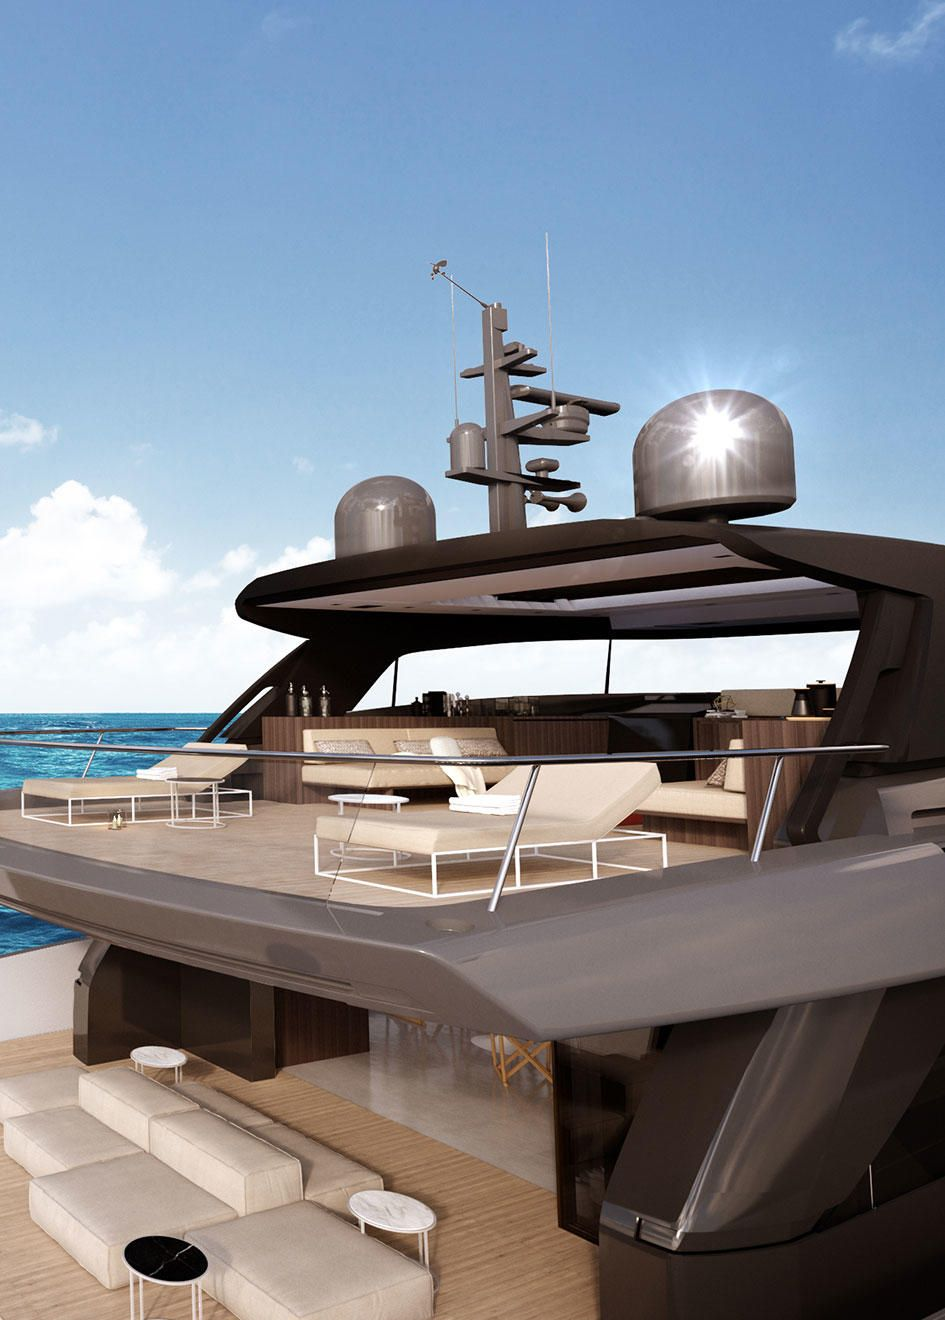 The First Details Of The Sanlorenzo Sx88 Crossover Yacht Were